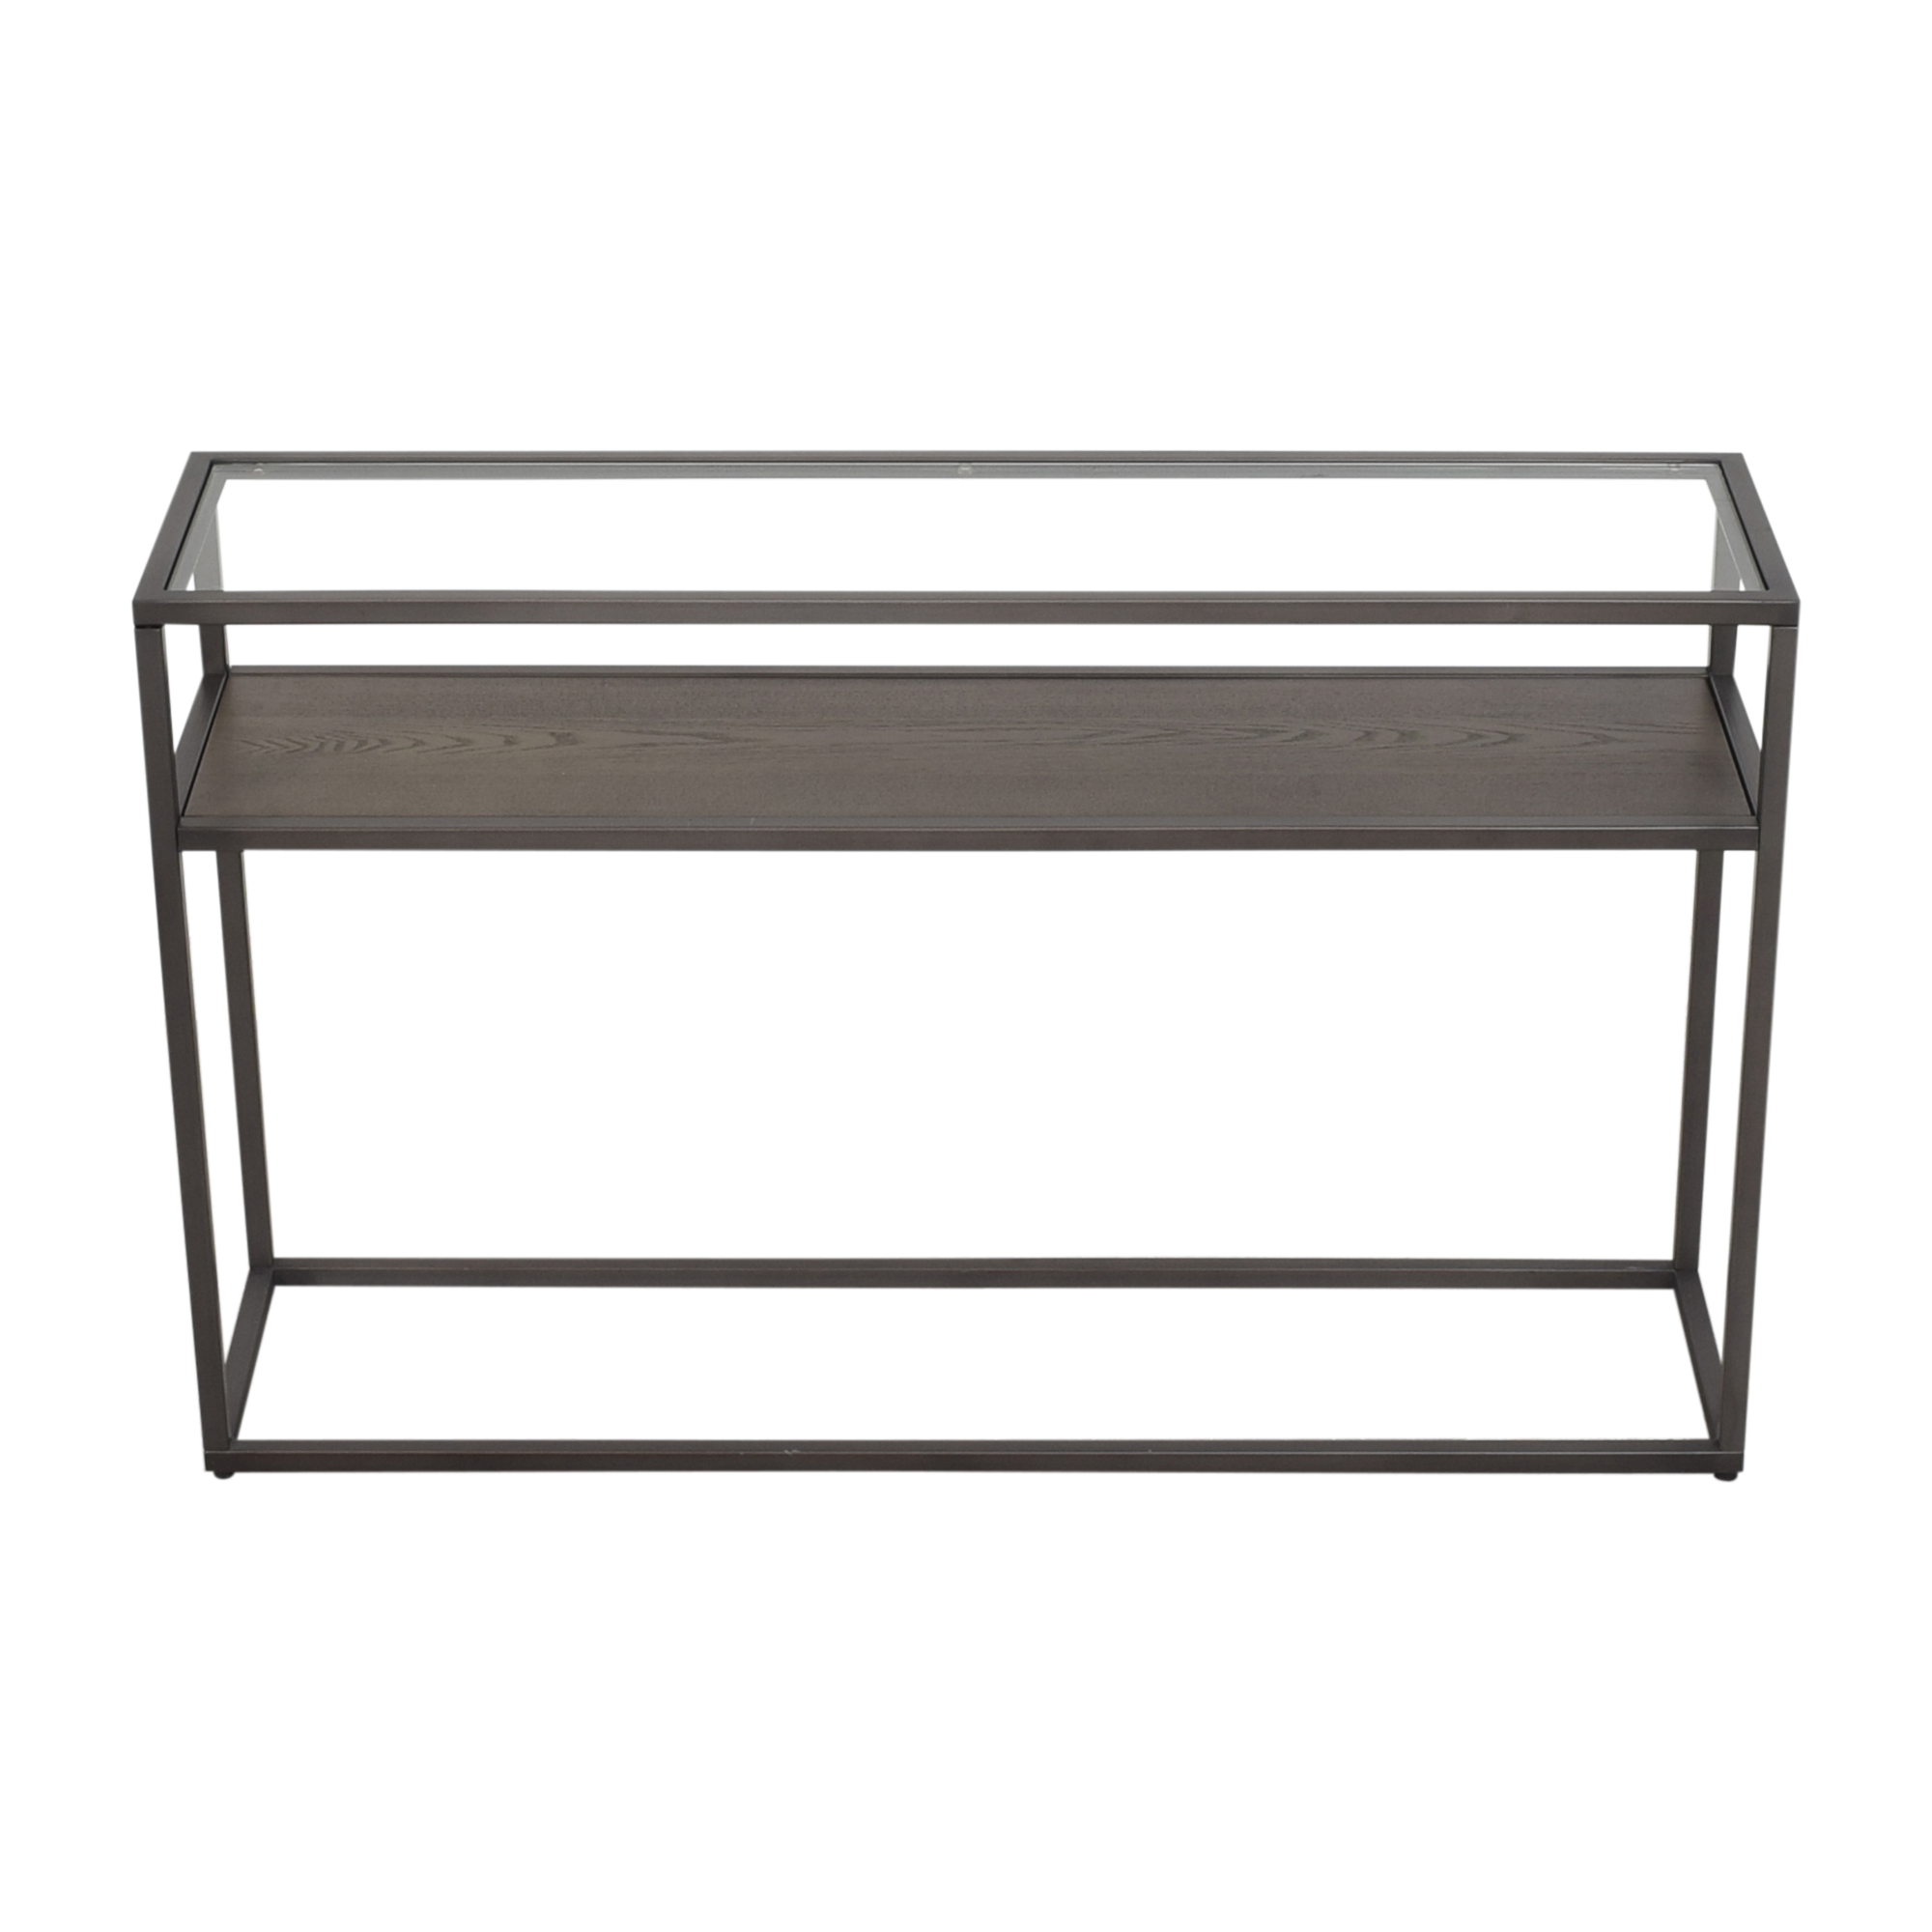 shop Crate & Barrel Switch Console Table Crate & Barrel